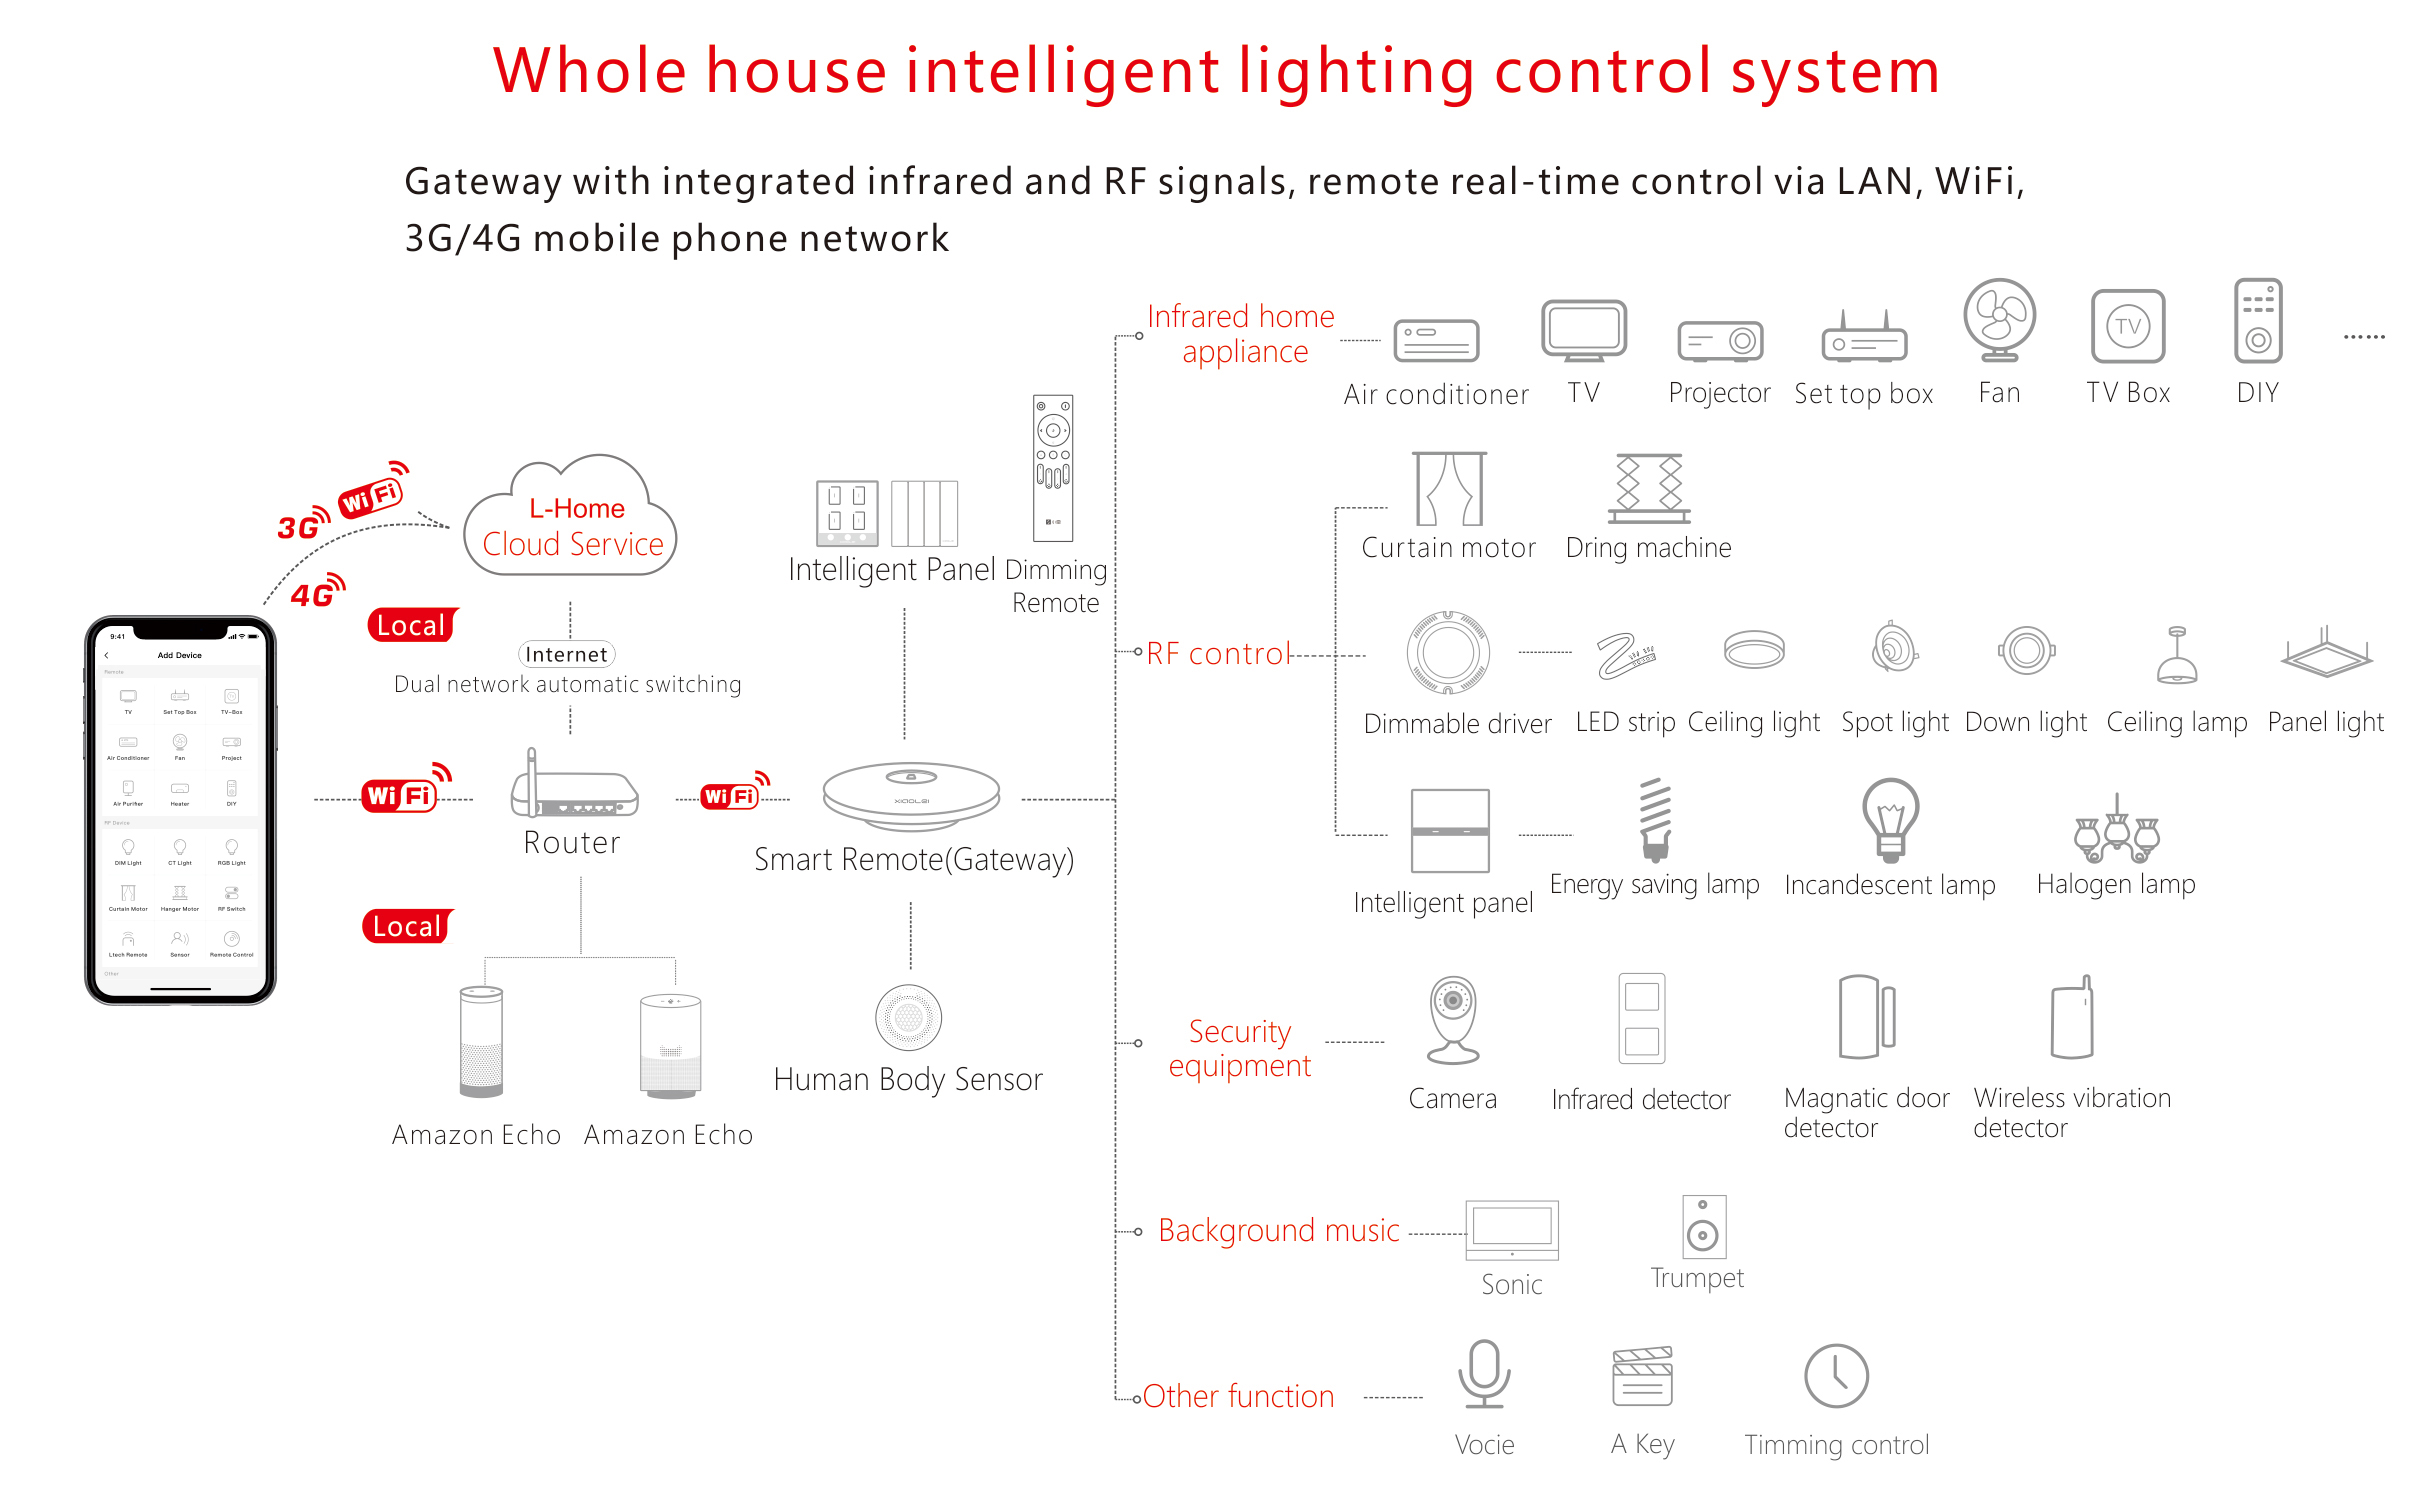 LTech-Xiaolei-whole-house-intelligent-lighting-control-system